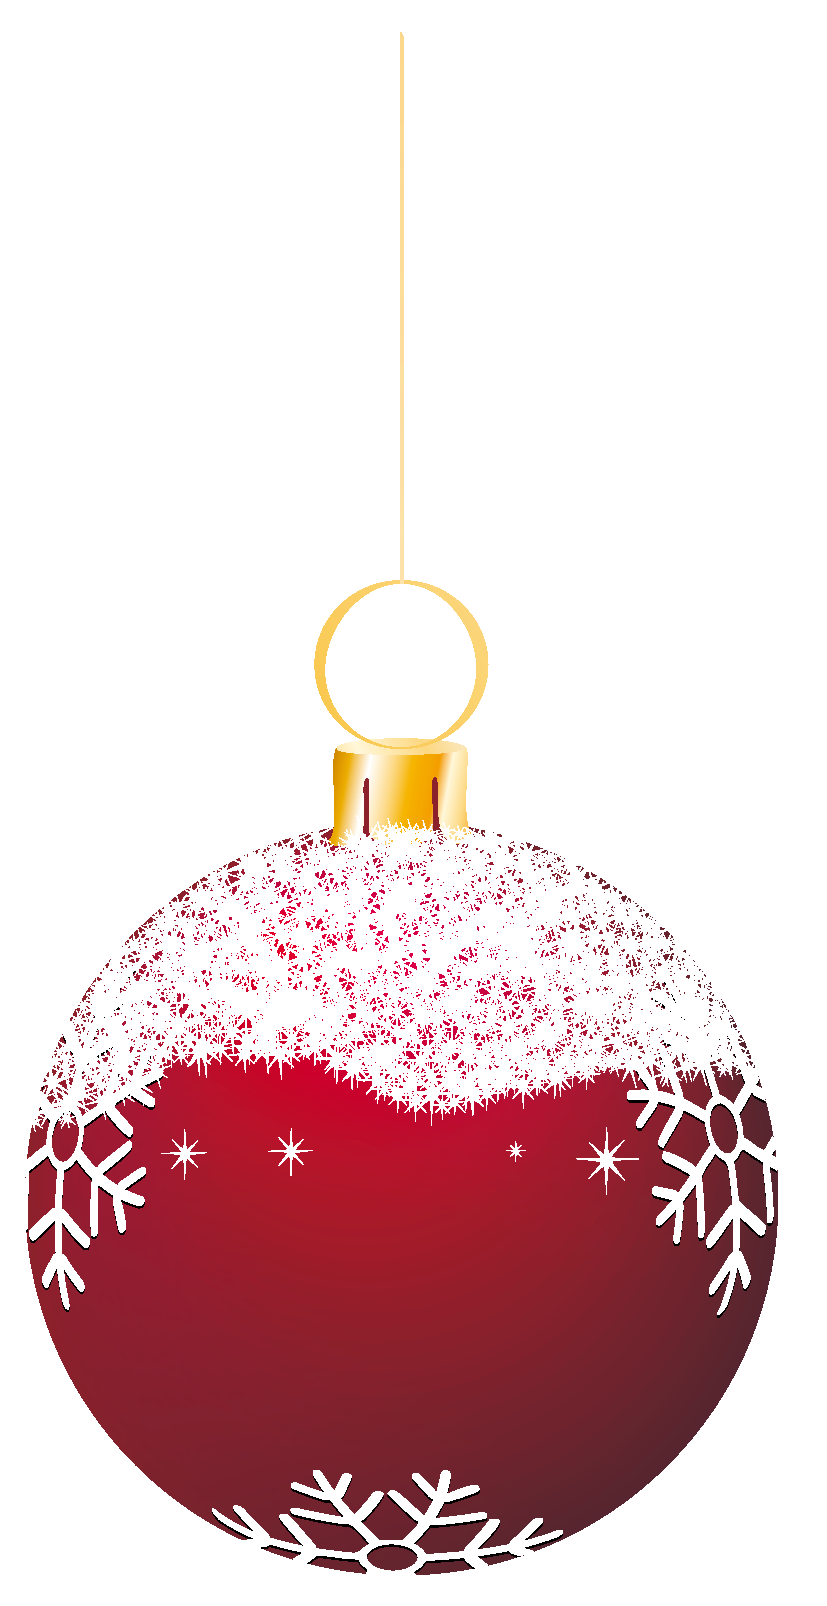 Transparent Red Snowy Christmas Ball Ornament Clipart.